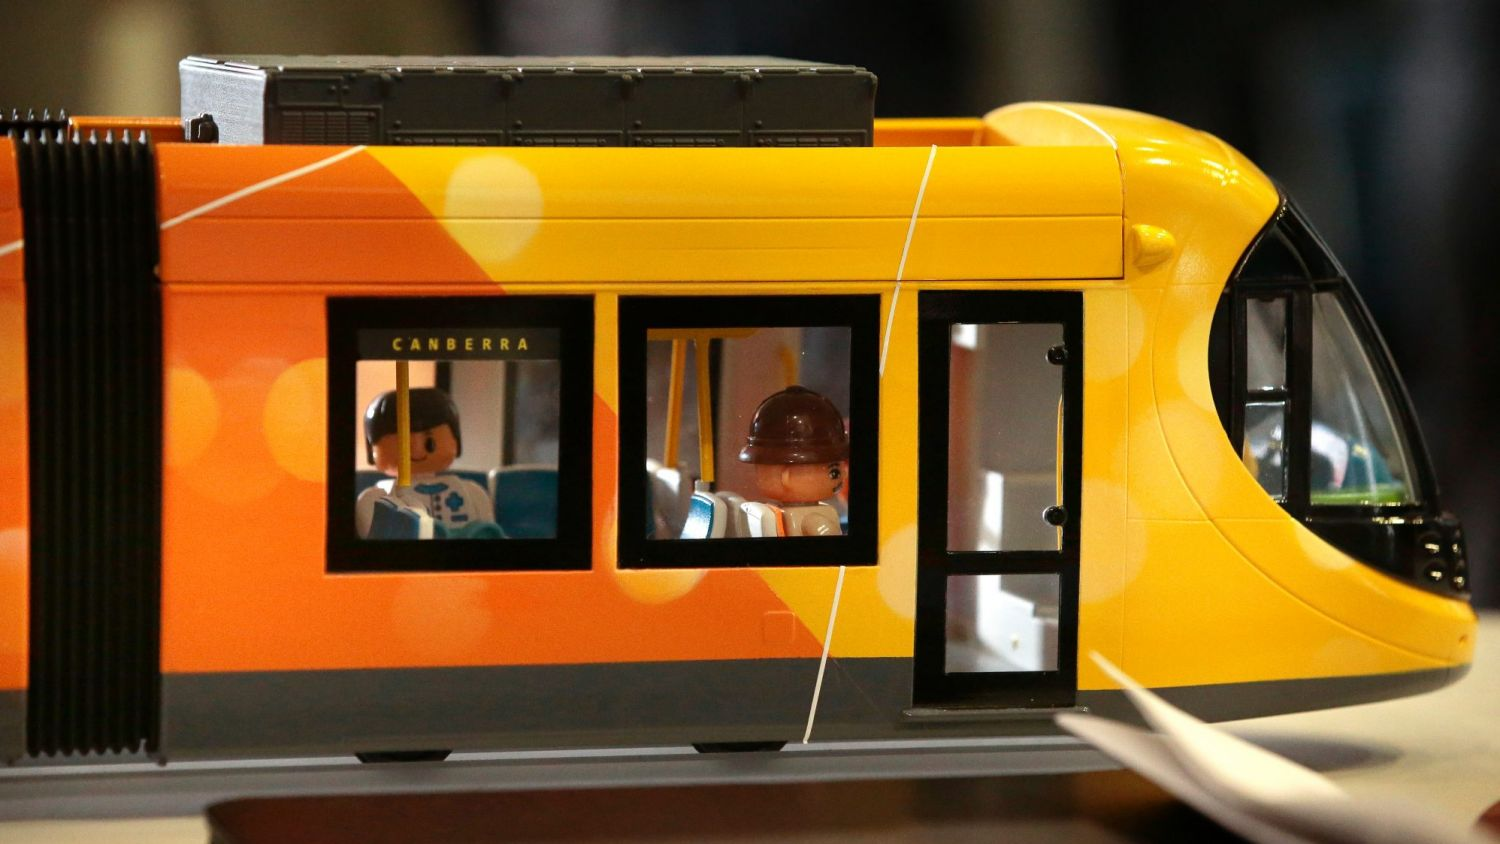 Canberra Light Rail Design Matters Is Light Rail The Best Option For Canberra